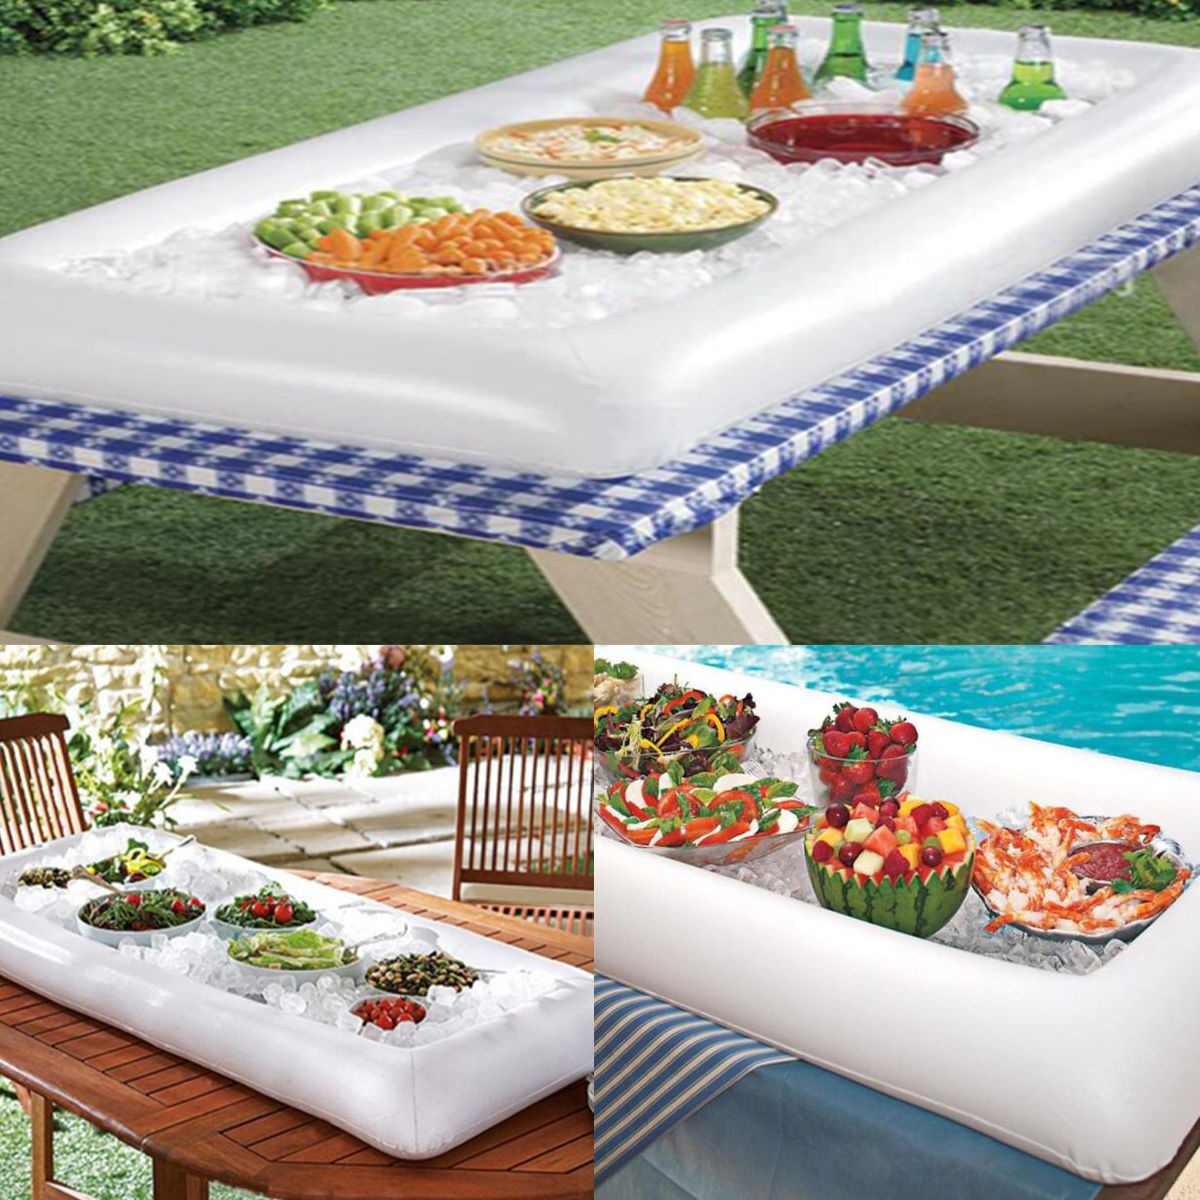 PVC Inflatable Pool Beer Table Dining Food Serving Pad Outdoor Ice Mat Water Party Play